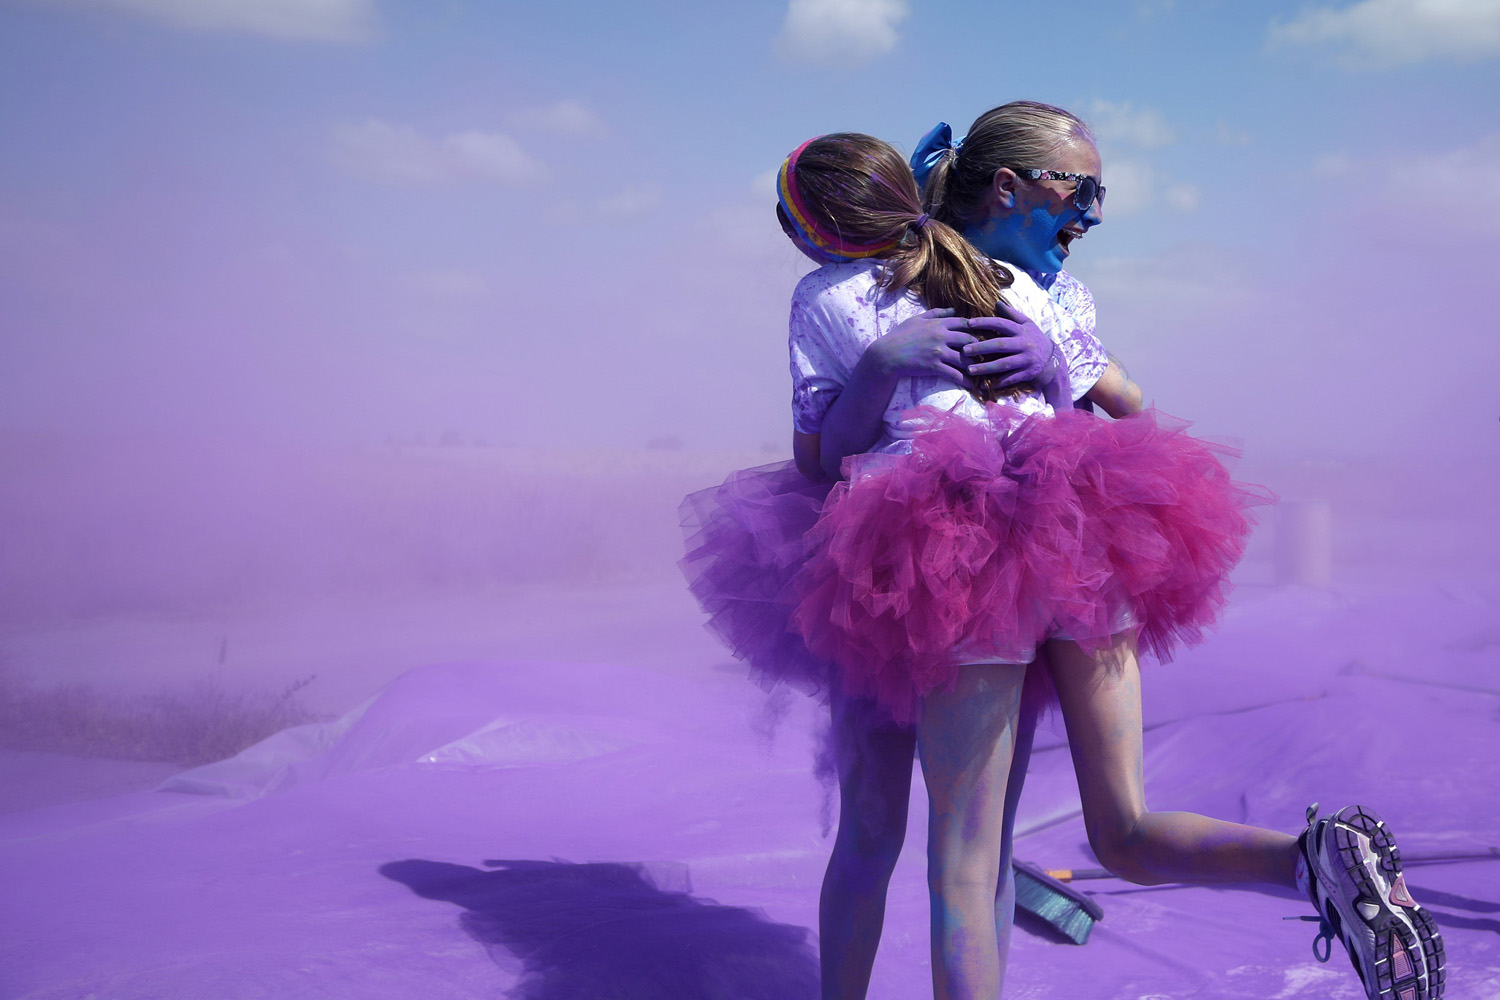 Competitors hug after running through colored powder at the Orange County Color 5K Run in Irvine, Calif., on May 10, 2014.